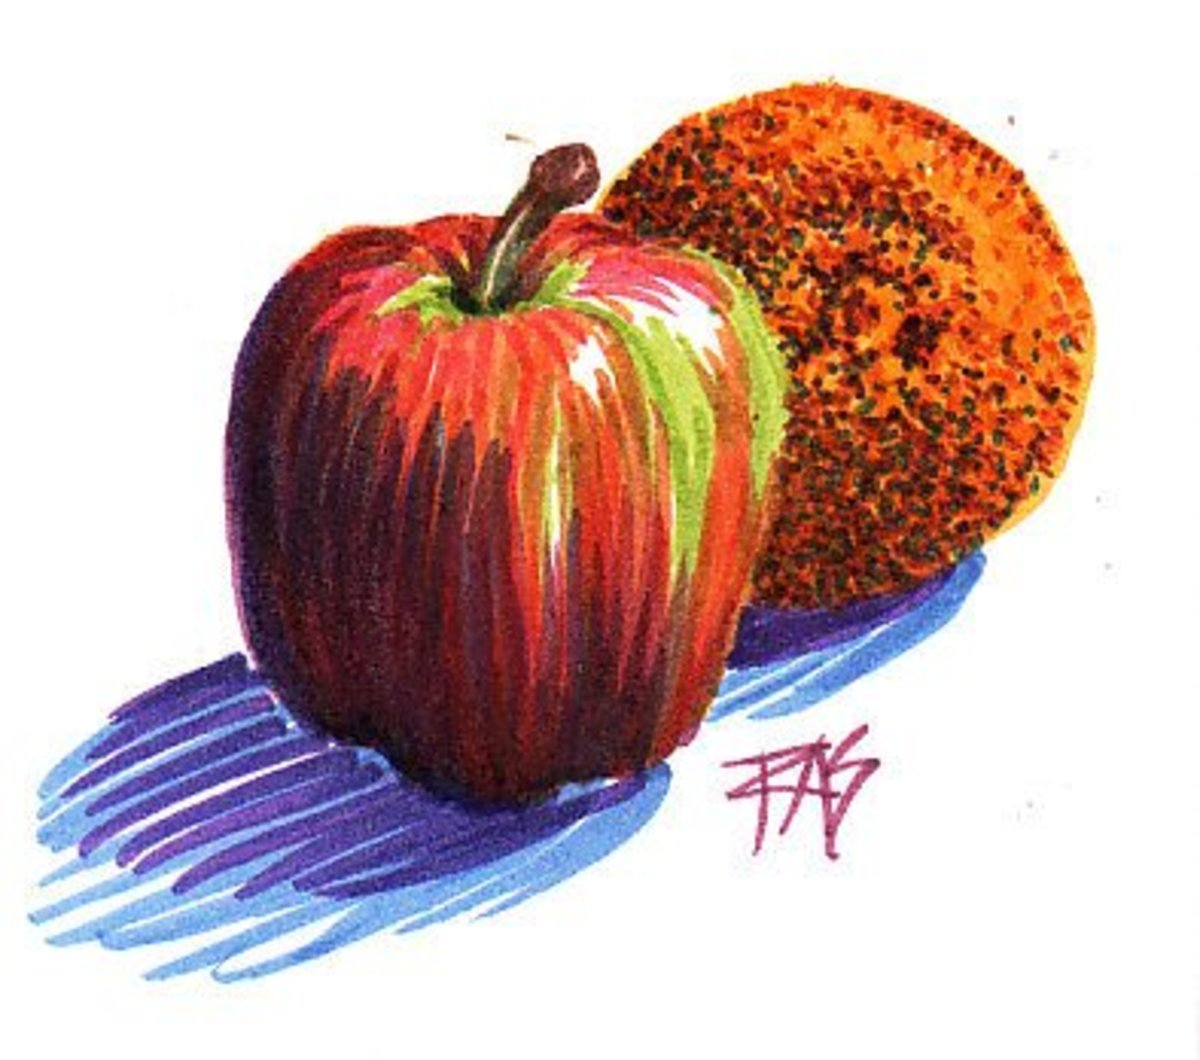 Apple and Orange, Pitt Artist Pens in white wirebound ProArt sketchbook by Robert A. Sloan